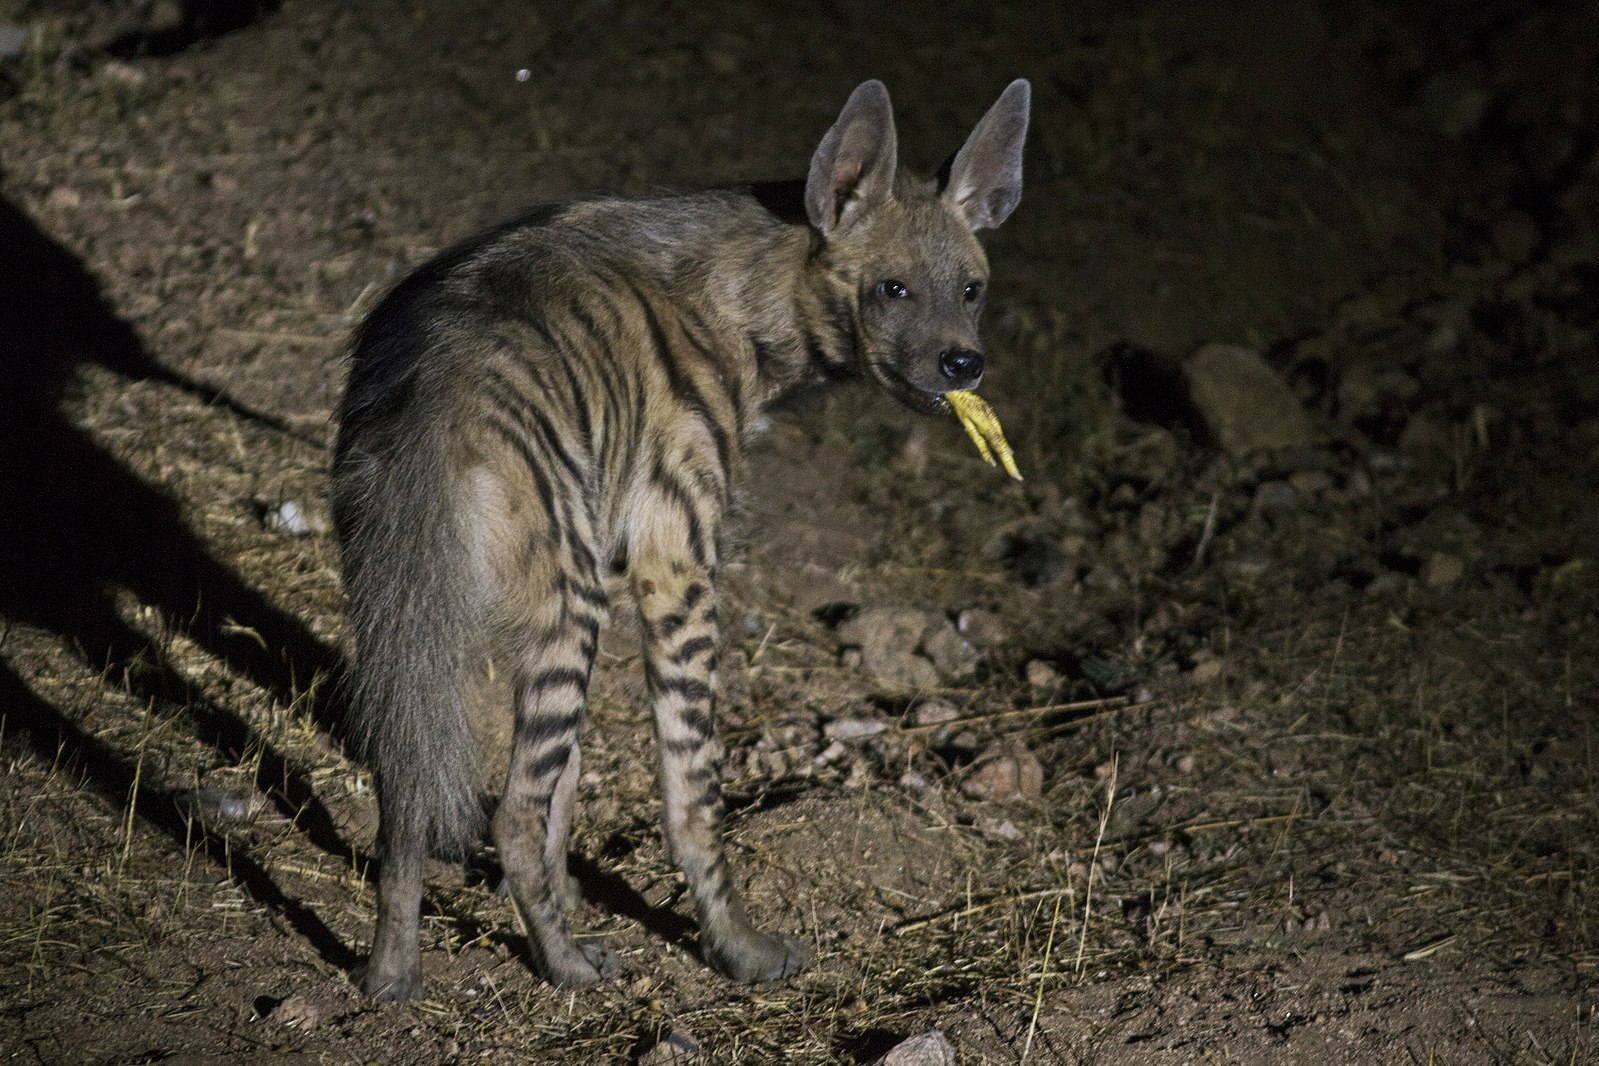 A striped Hyena holding a chicken foot in its mouth as it stares back at a camera flash in the midst of night.